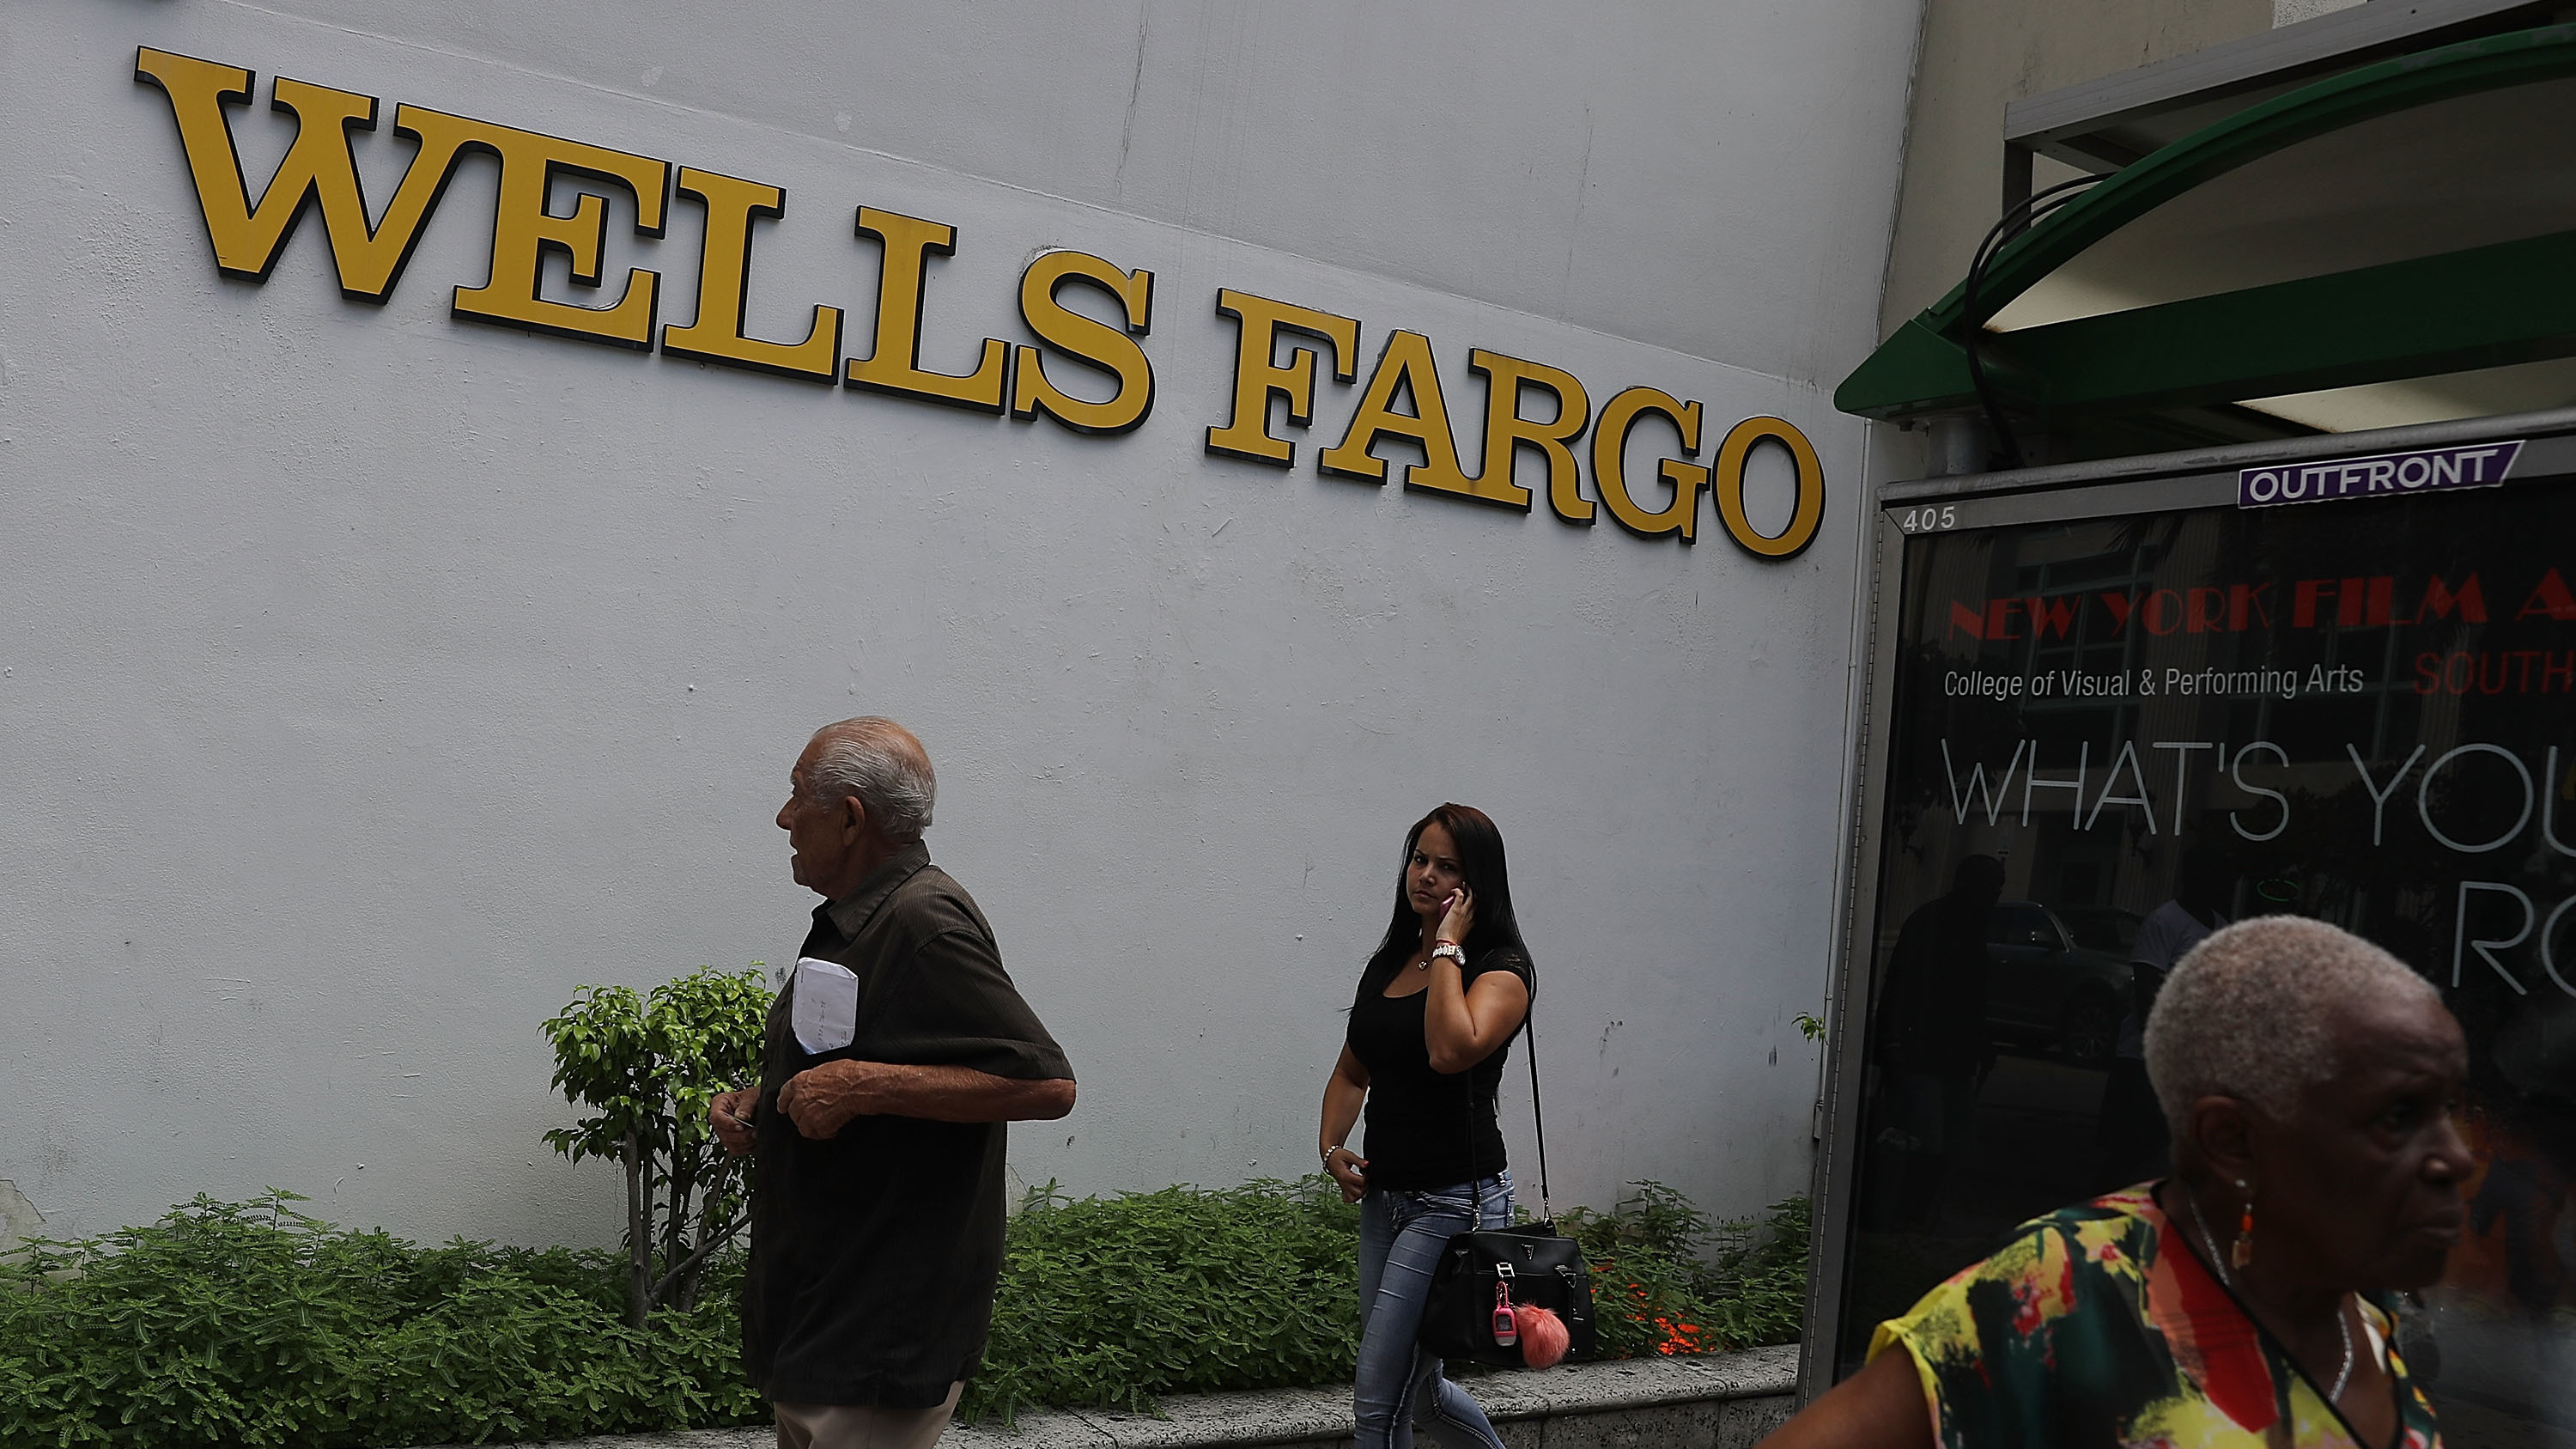 People walk in front of a Wells Fargo branch on Sept. 9, 2016 in Miami, Fla. On Monday, the U.S. Supreme Court ruled that the city of Miami can sue Wells Fargo and Bank of America under the Fair Housing Act for damages caused by allegedly predatory and discriminatory lending practices.